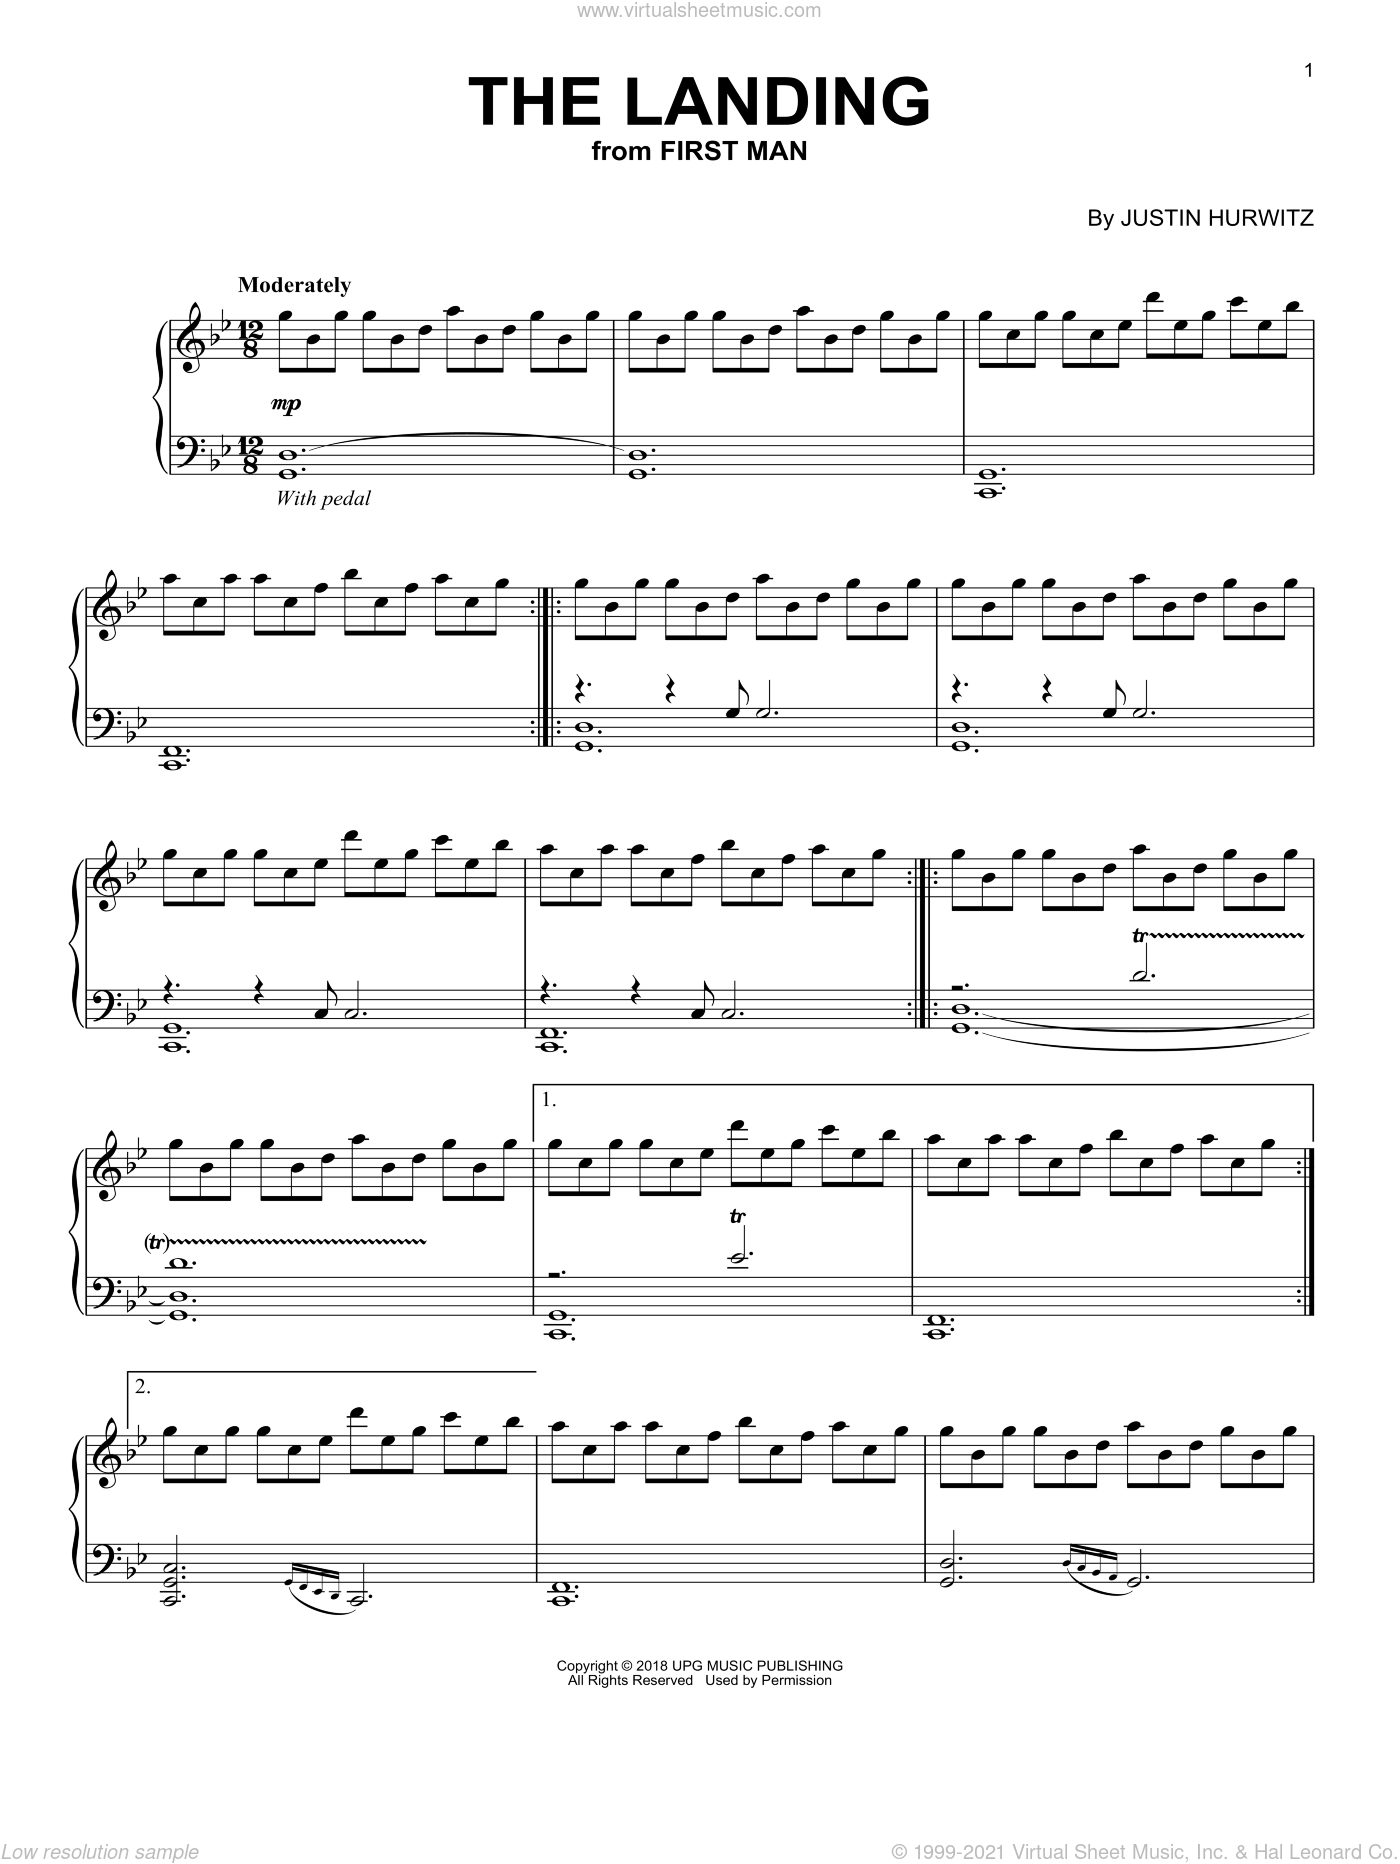 The Landing (from First Man) sheet music for piano solo by Justin Hurwitz, intermediate skill level